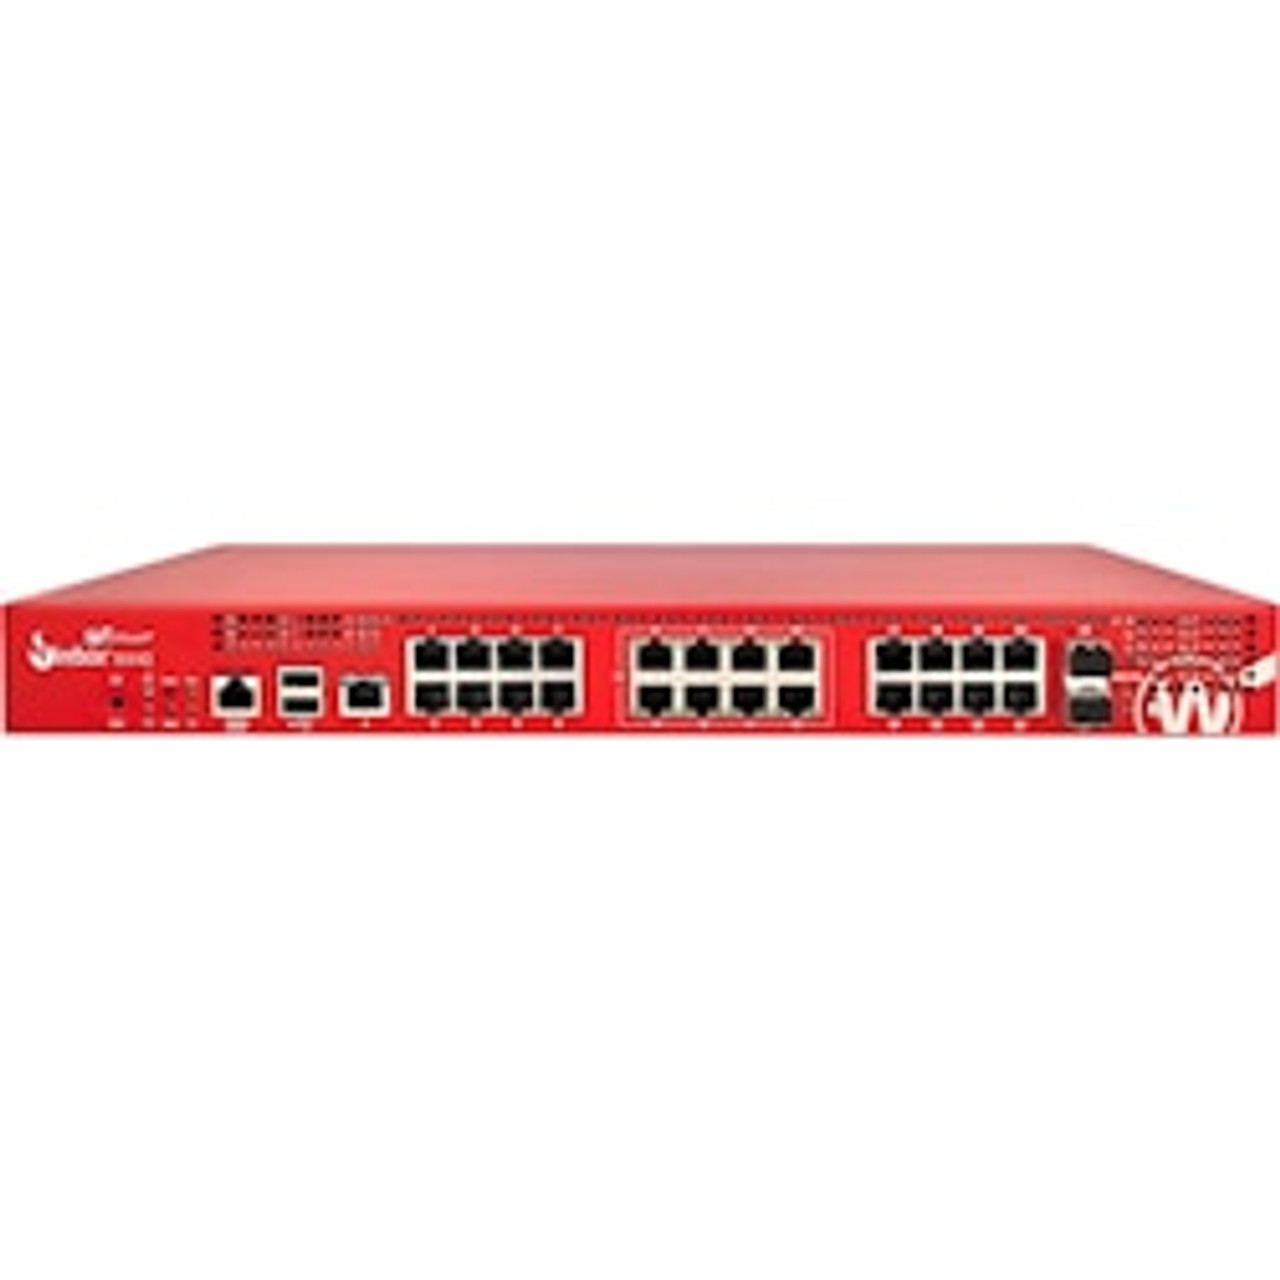 Trade Up to WatchGuard Firebox M440 with 1-yr Standard Support